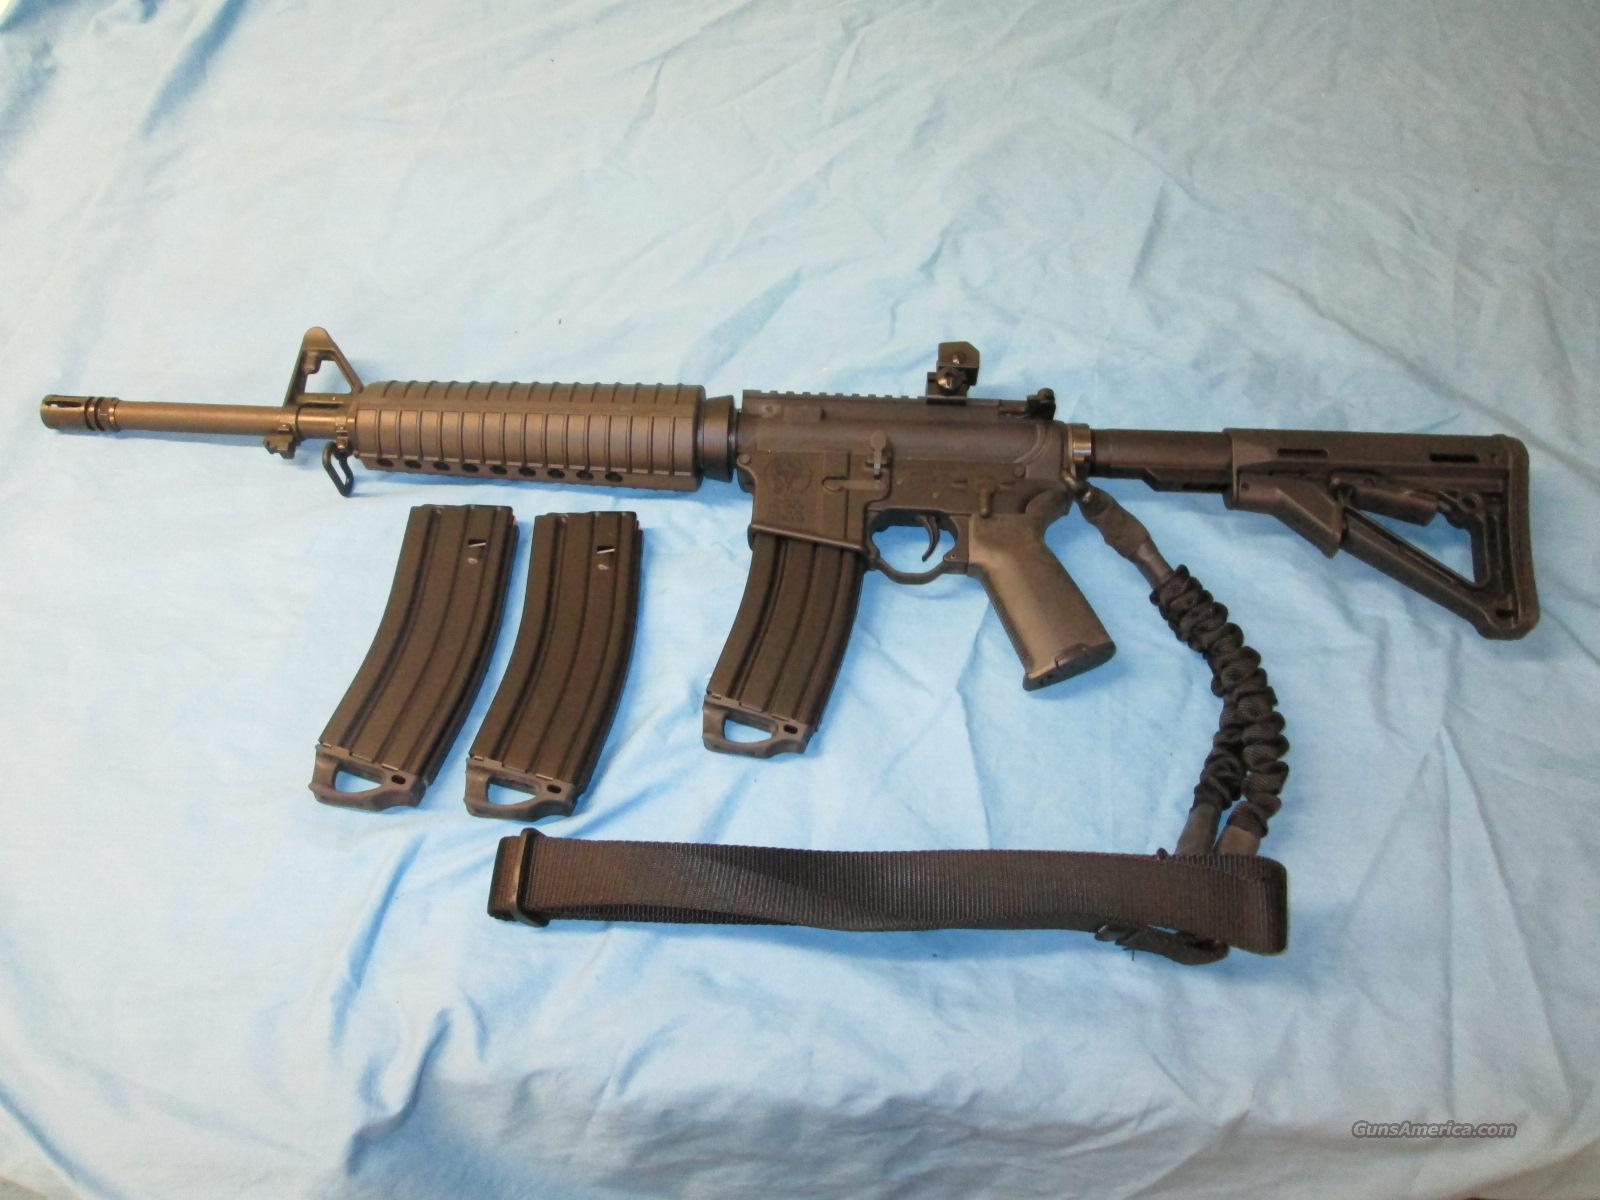 SPIKES TACTICAL AR-15  Guns > Rifles > AR-15 Rifles - Small Manufacturers > Complete Rifle